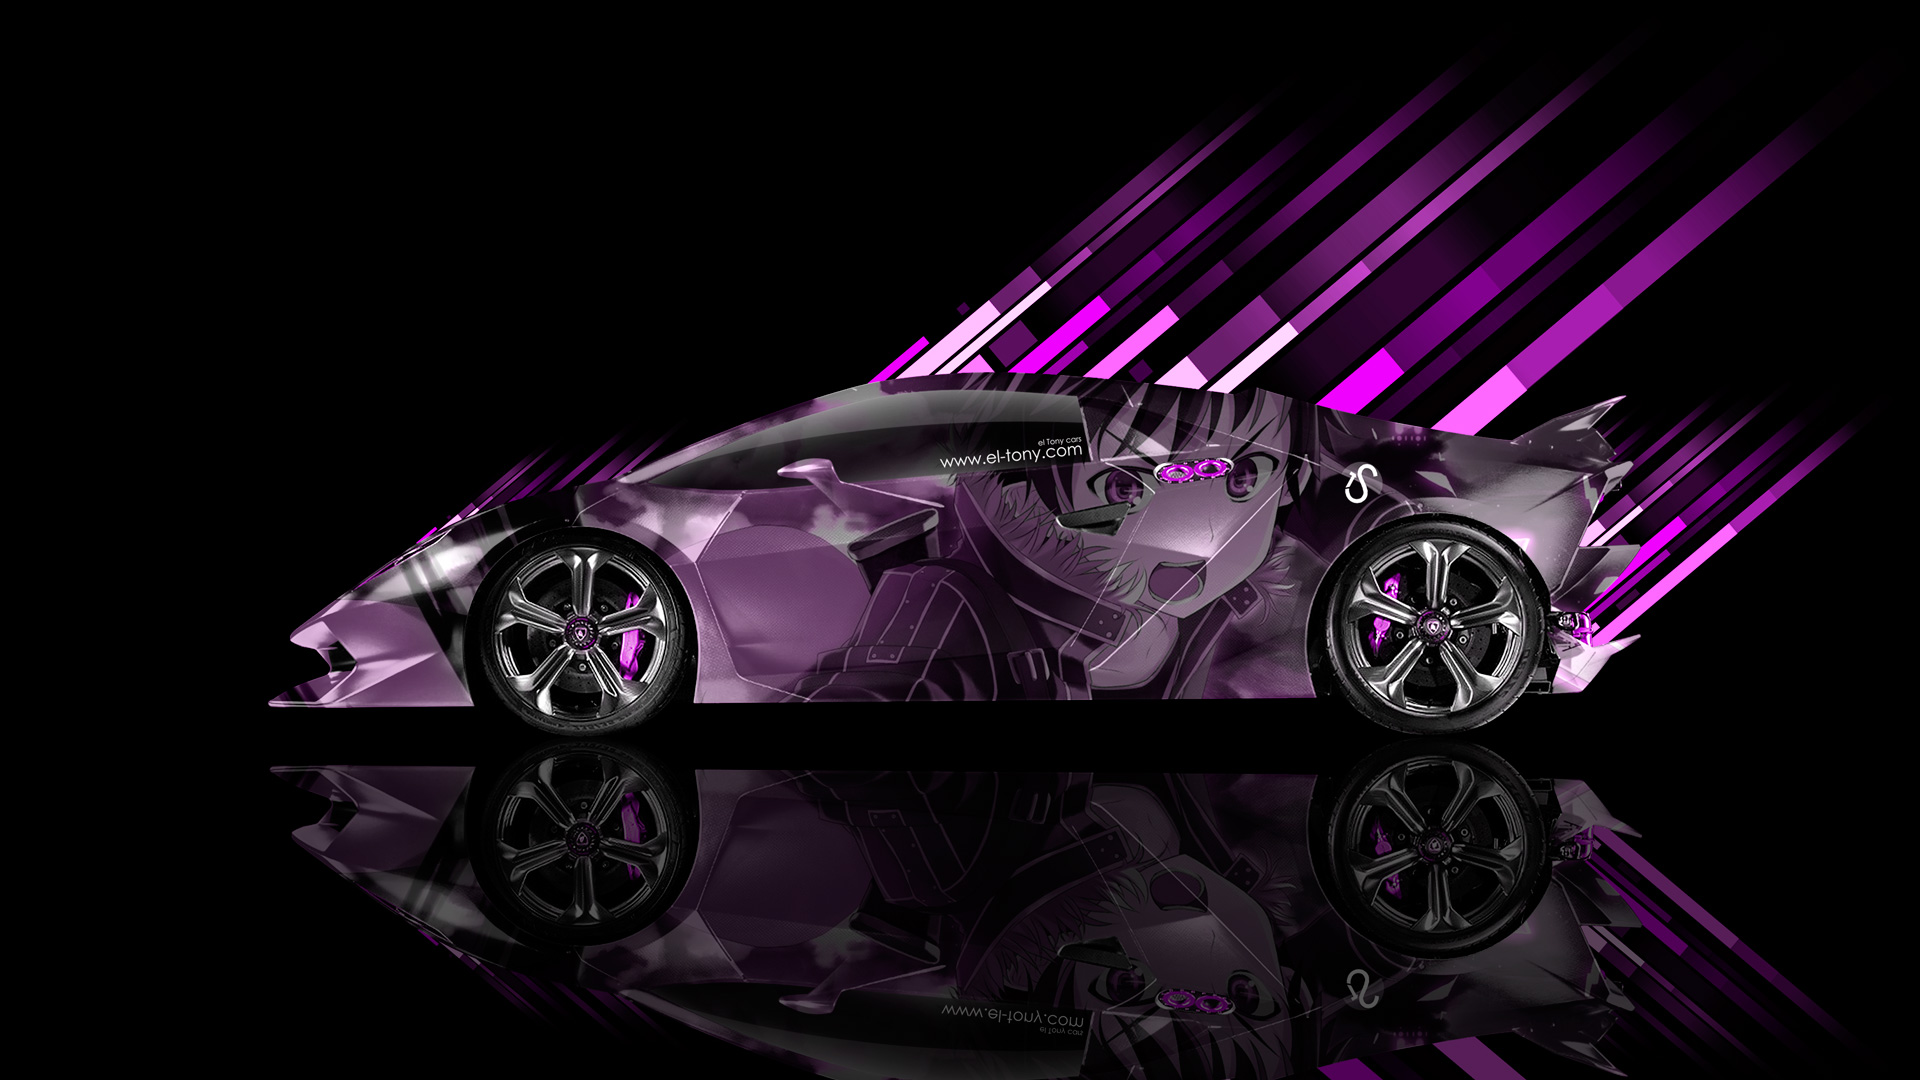 Bmw m6 hamann tuning side green fire abstract car 2015 hd wallpapers - Elemento Side Anime Aerography Car 2014 Pink Colors Hd Wallpapers